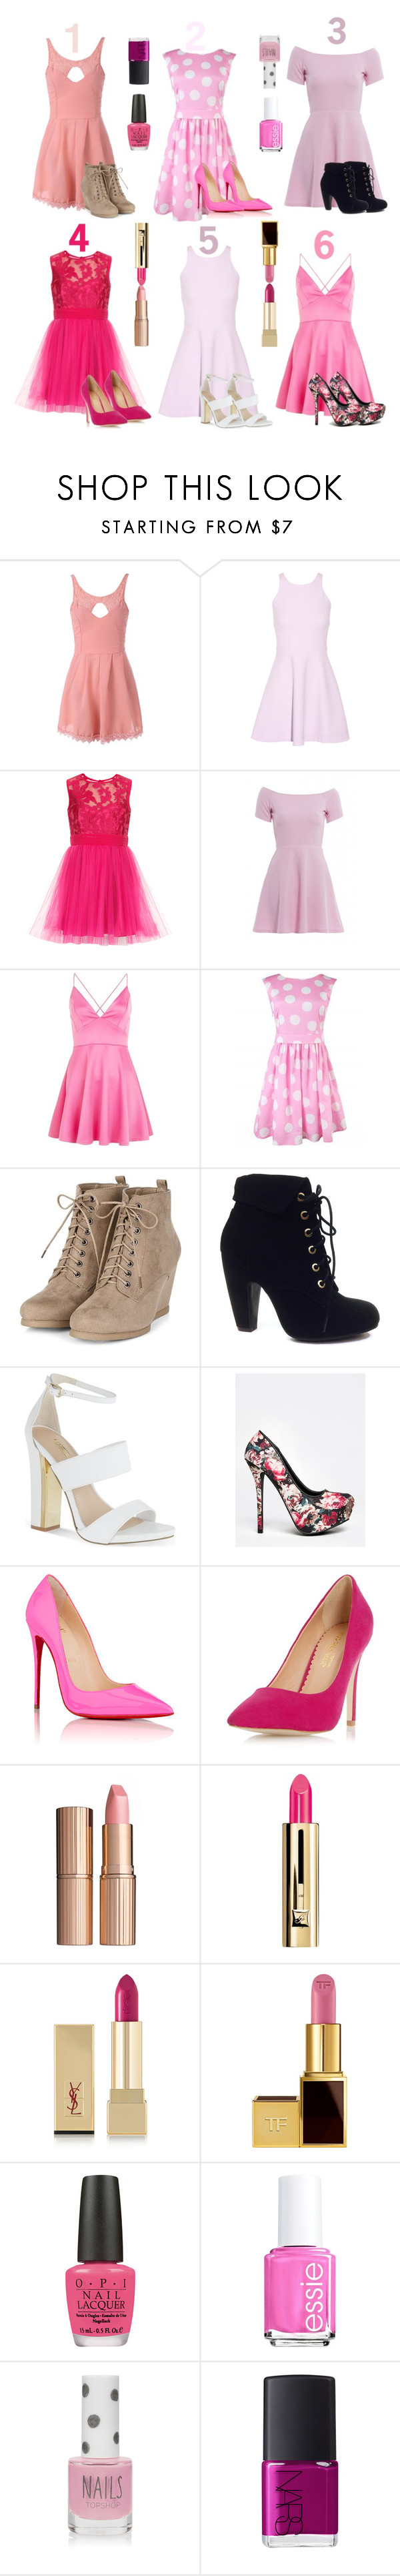 """""""Pink Outfits:Which one is the best?"""" by mysecretismine ❤ liked on Polyvore featuring Elizabeth and James, AX Paris, Bamboo, Carvela, Qupid, Christian Louboutin, Dorothy Perkins, Charlotte Tilbury, Guerlain and Yves Saint Laurent"""